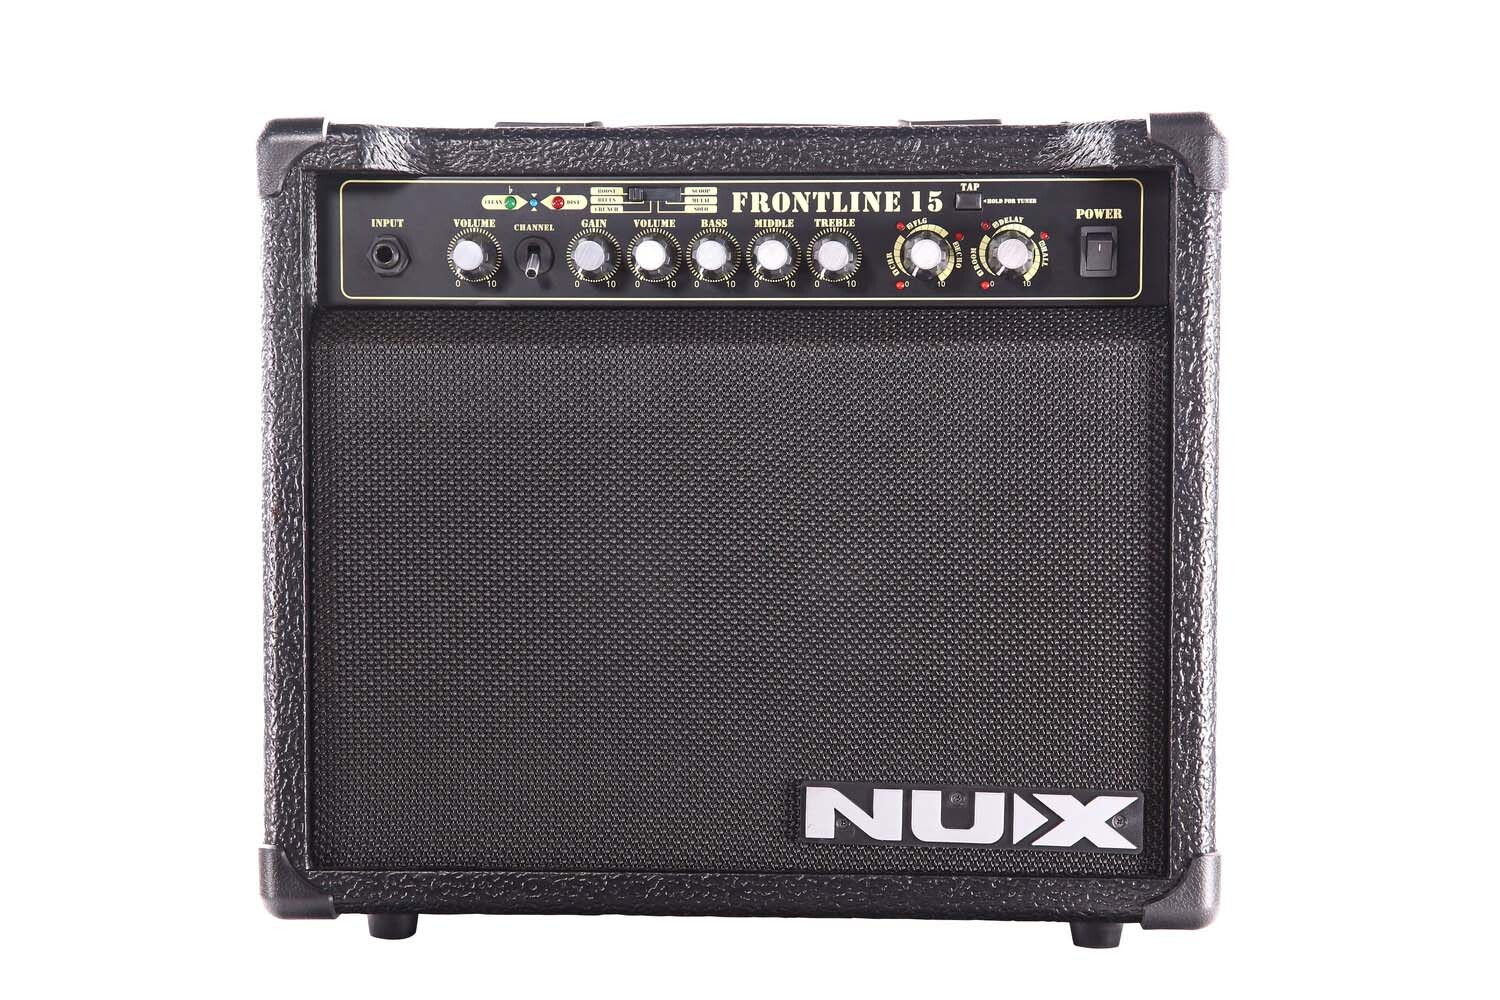 nux frontline 15 guitar combo amplifier 15w mic and aux inputs nux. Black Bedroom Furniture Sets. Home Design Ideas